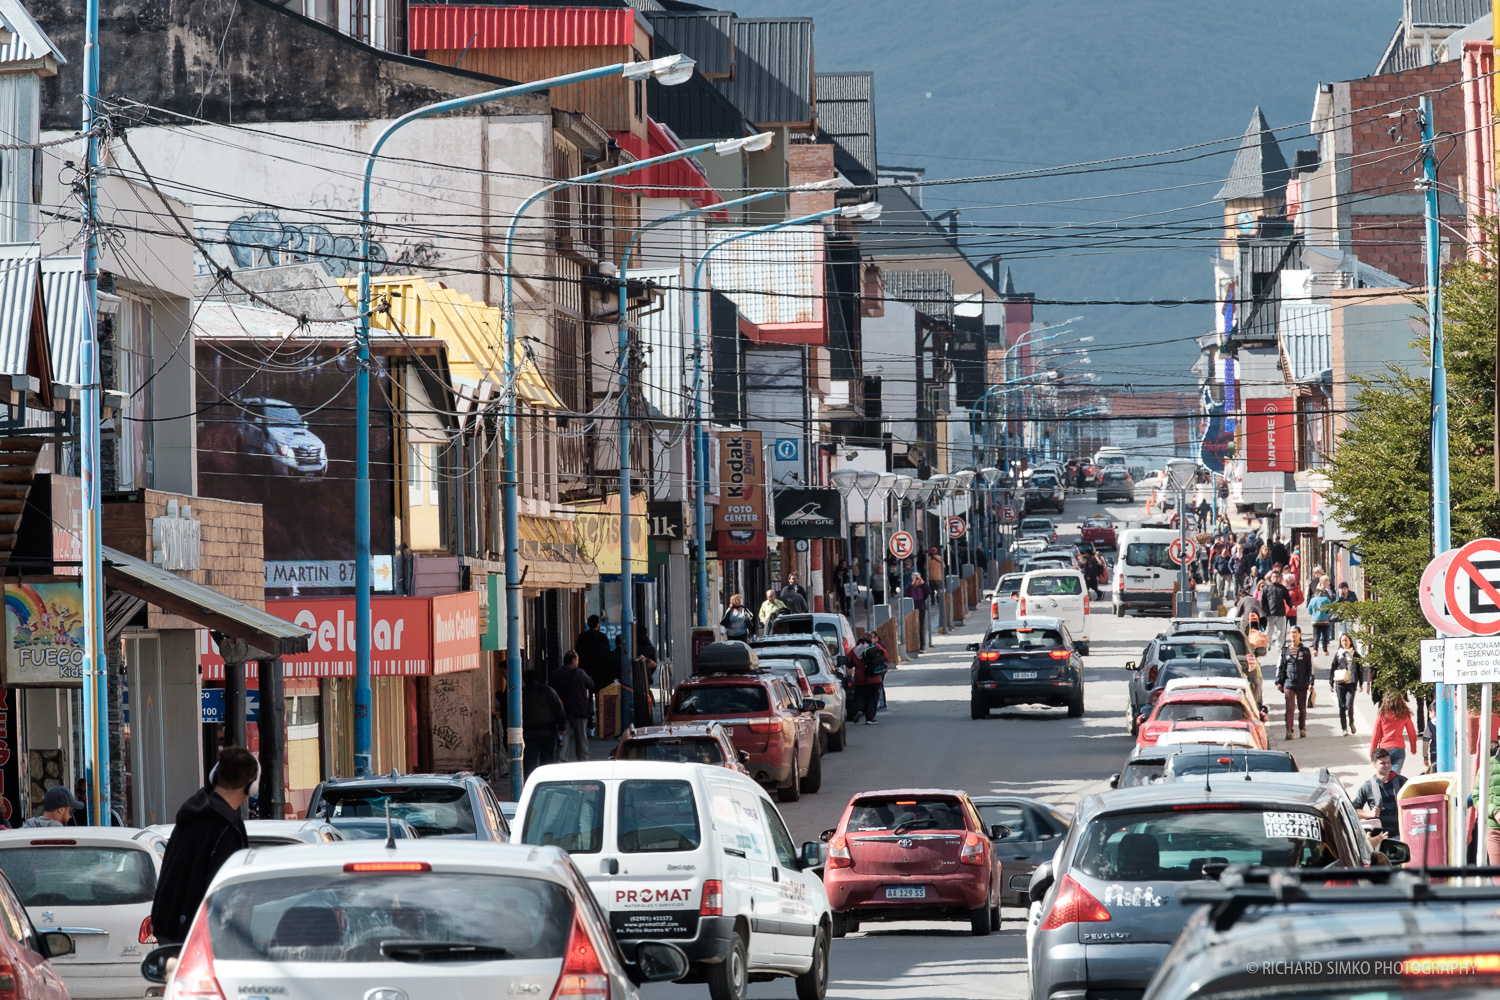 Avenue St Martin, the main street in Ushuaia where most of the shops and restaurants are located.